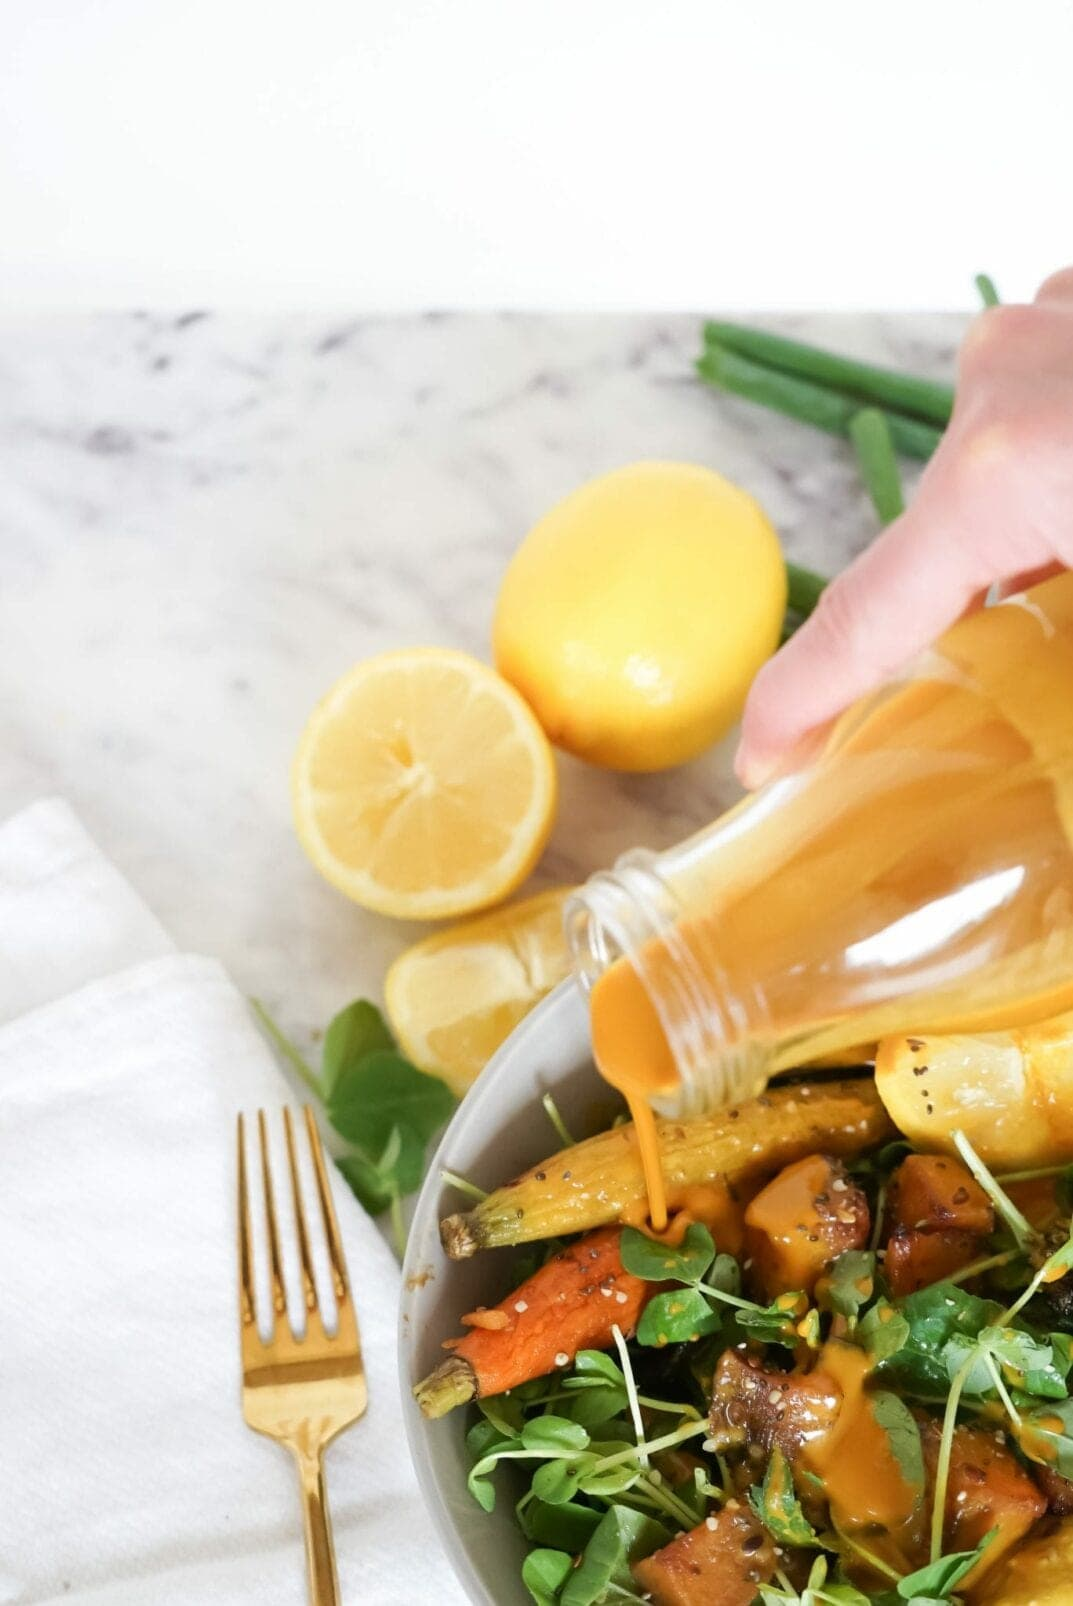 Lemon Turmeric Salad Dressing | roasted veggie salad with lemon turmeric dressing | nourish move love